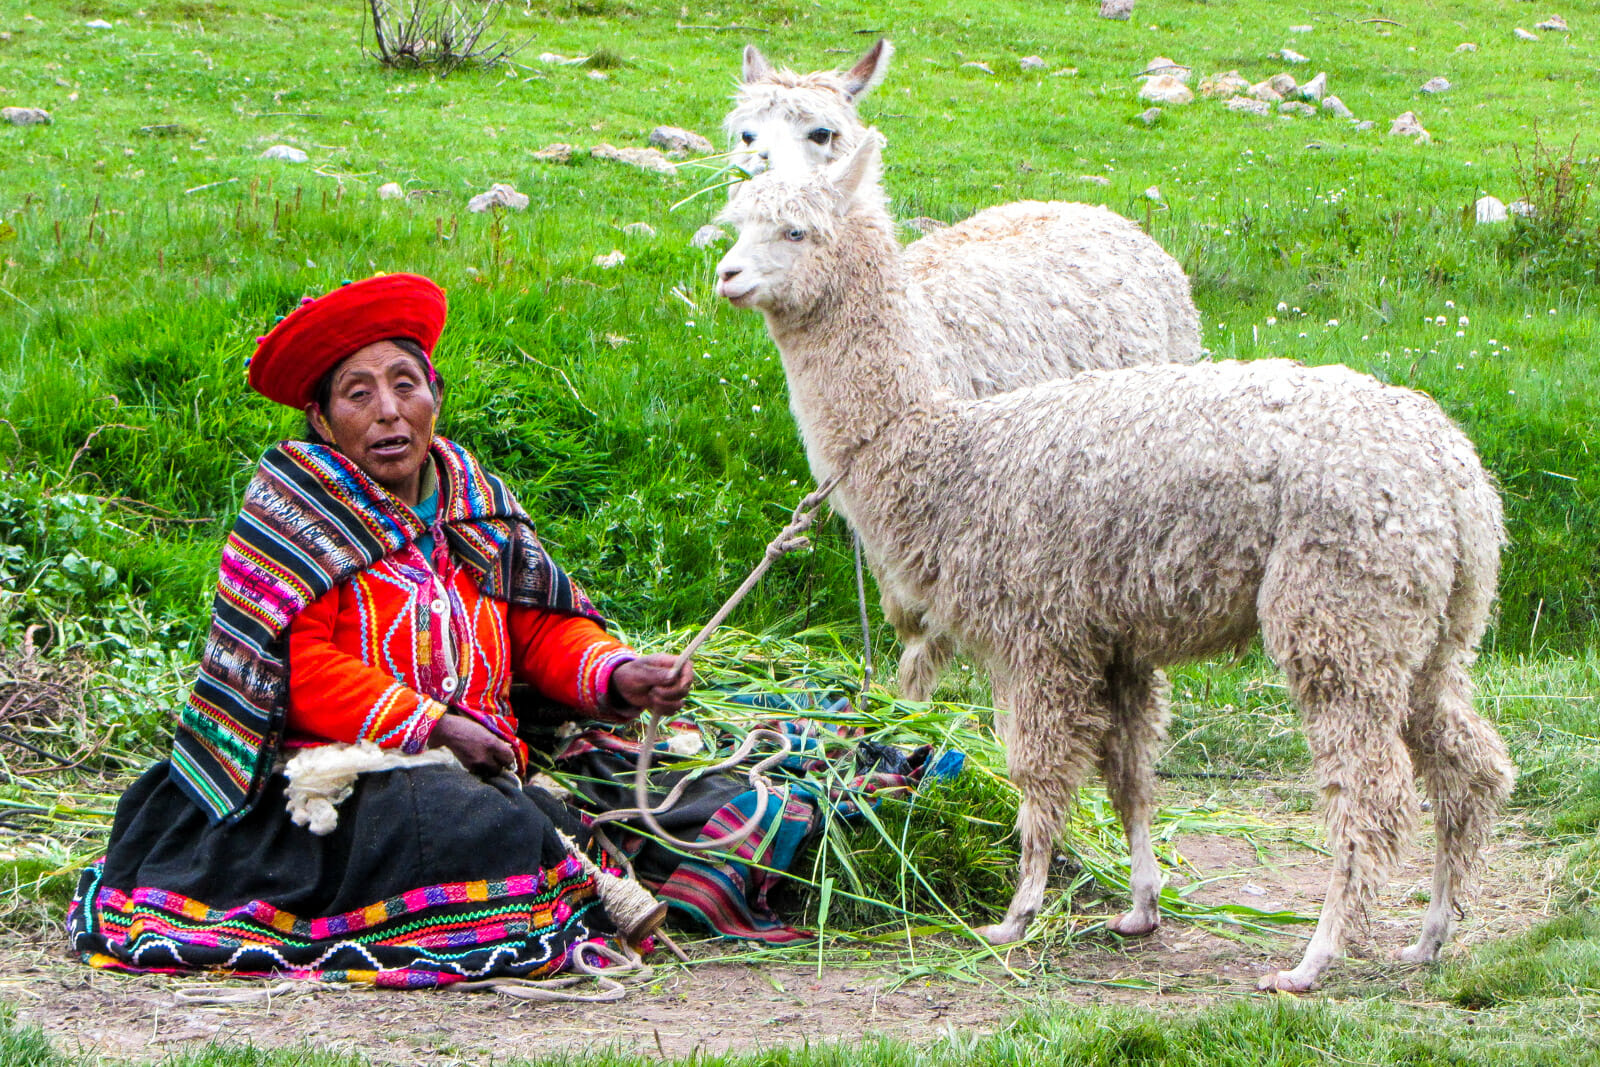 A Peruvian lady and her llama friends